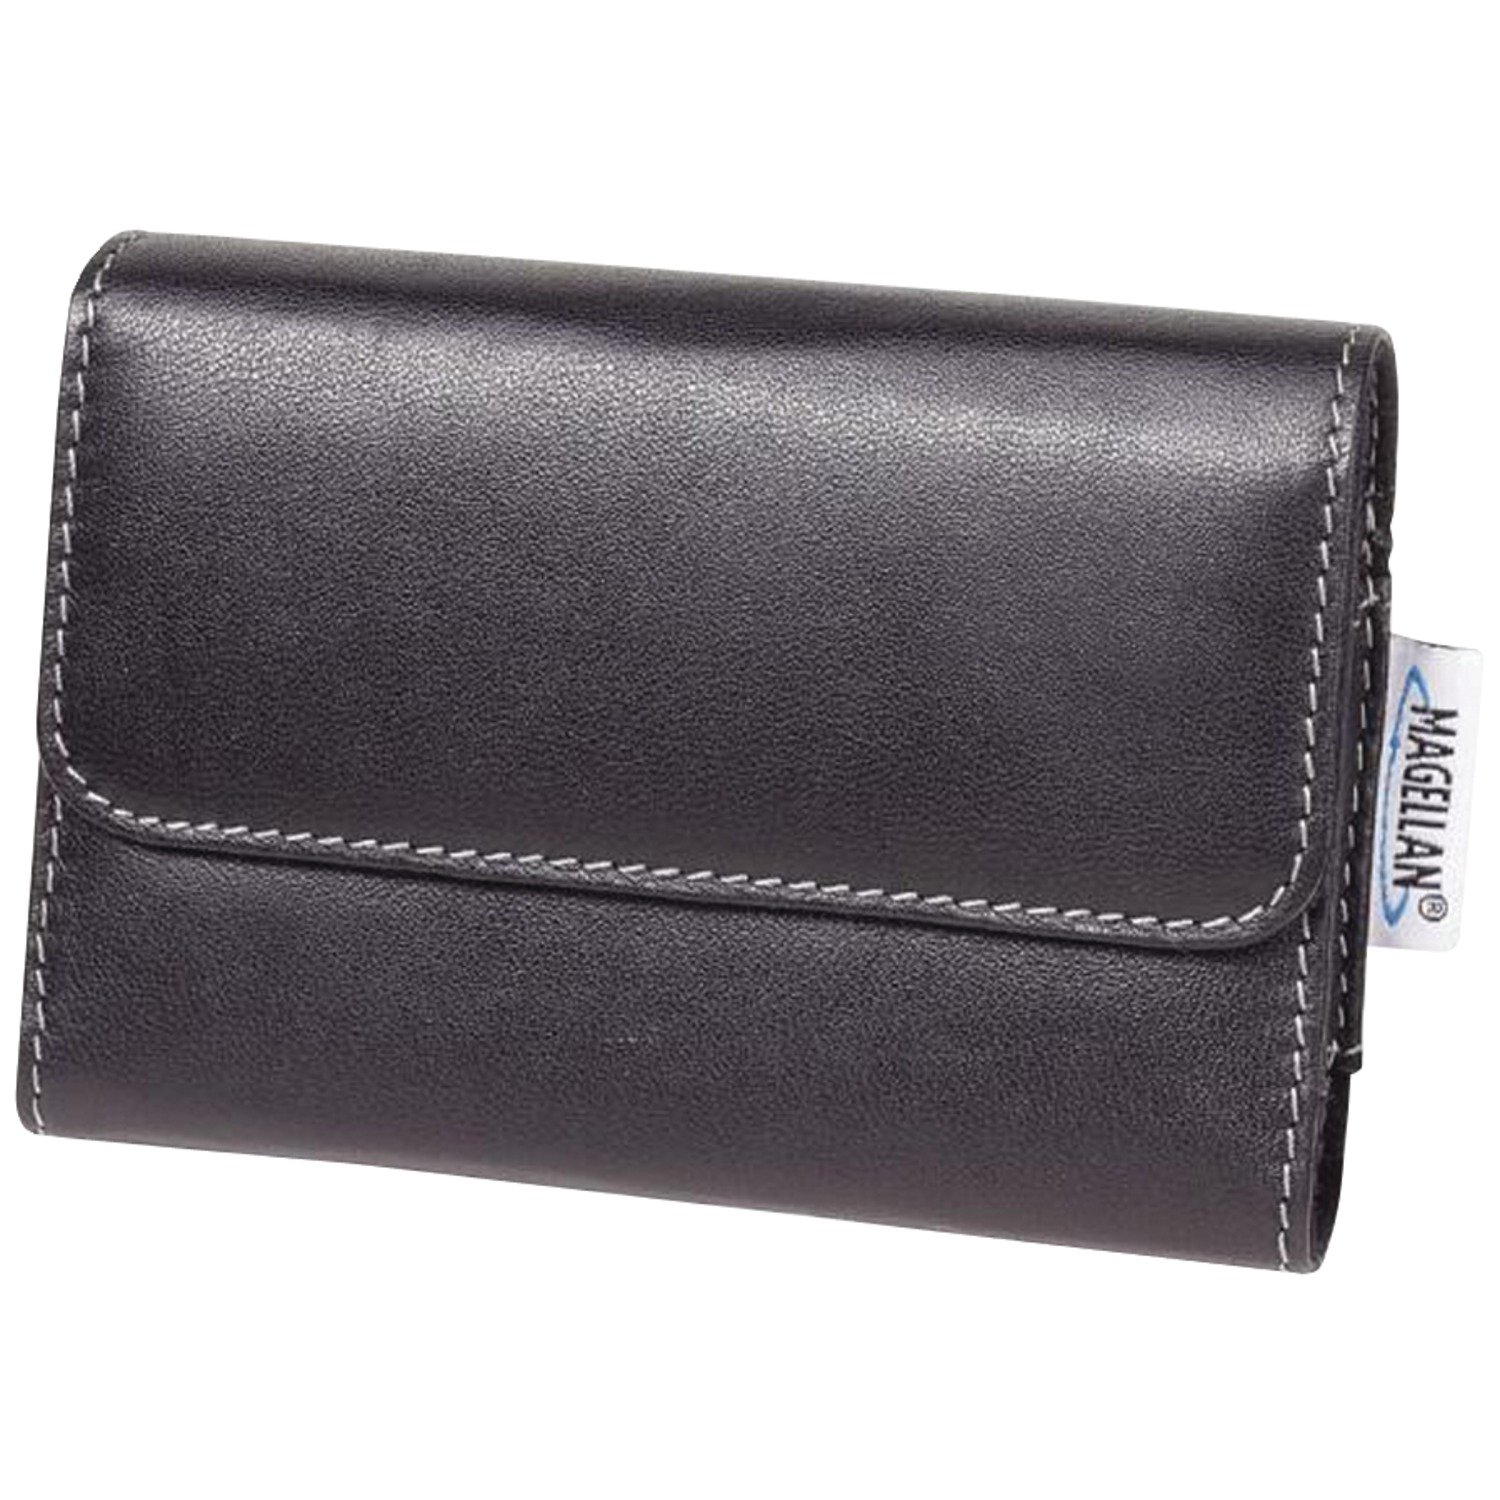 Magellan Leather Case for 4.3- and 4.7-Inch GPS